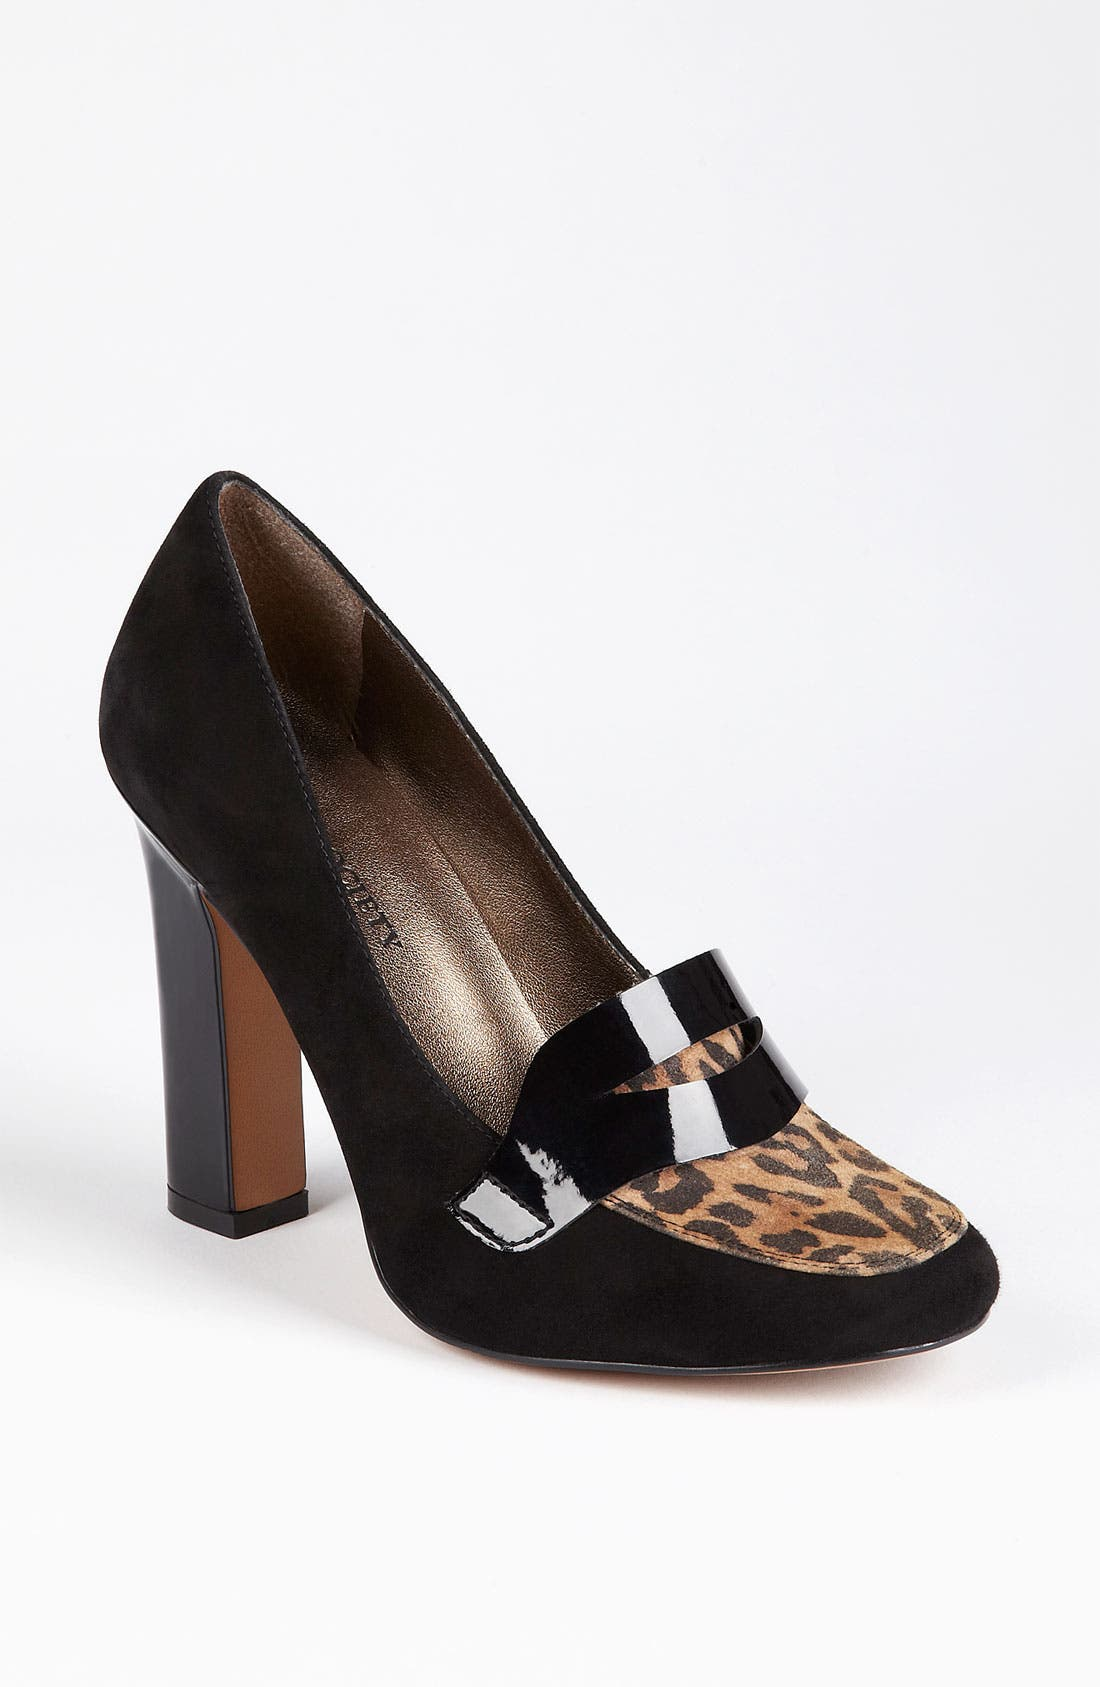 Alternate Image 1 Selected - Sole Society 'Analisa' Pump